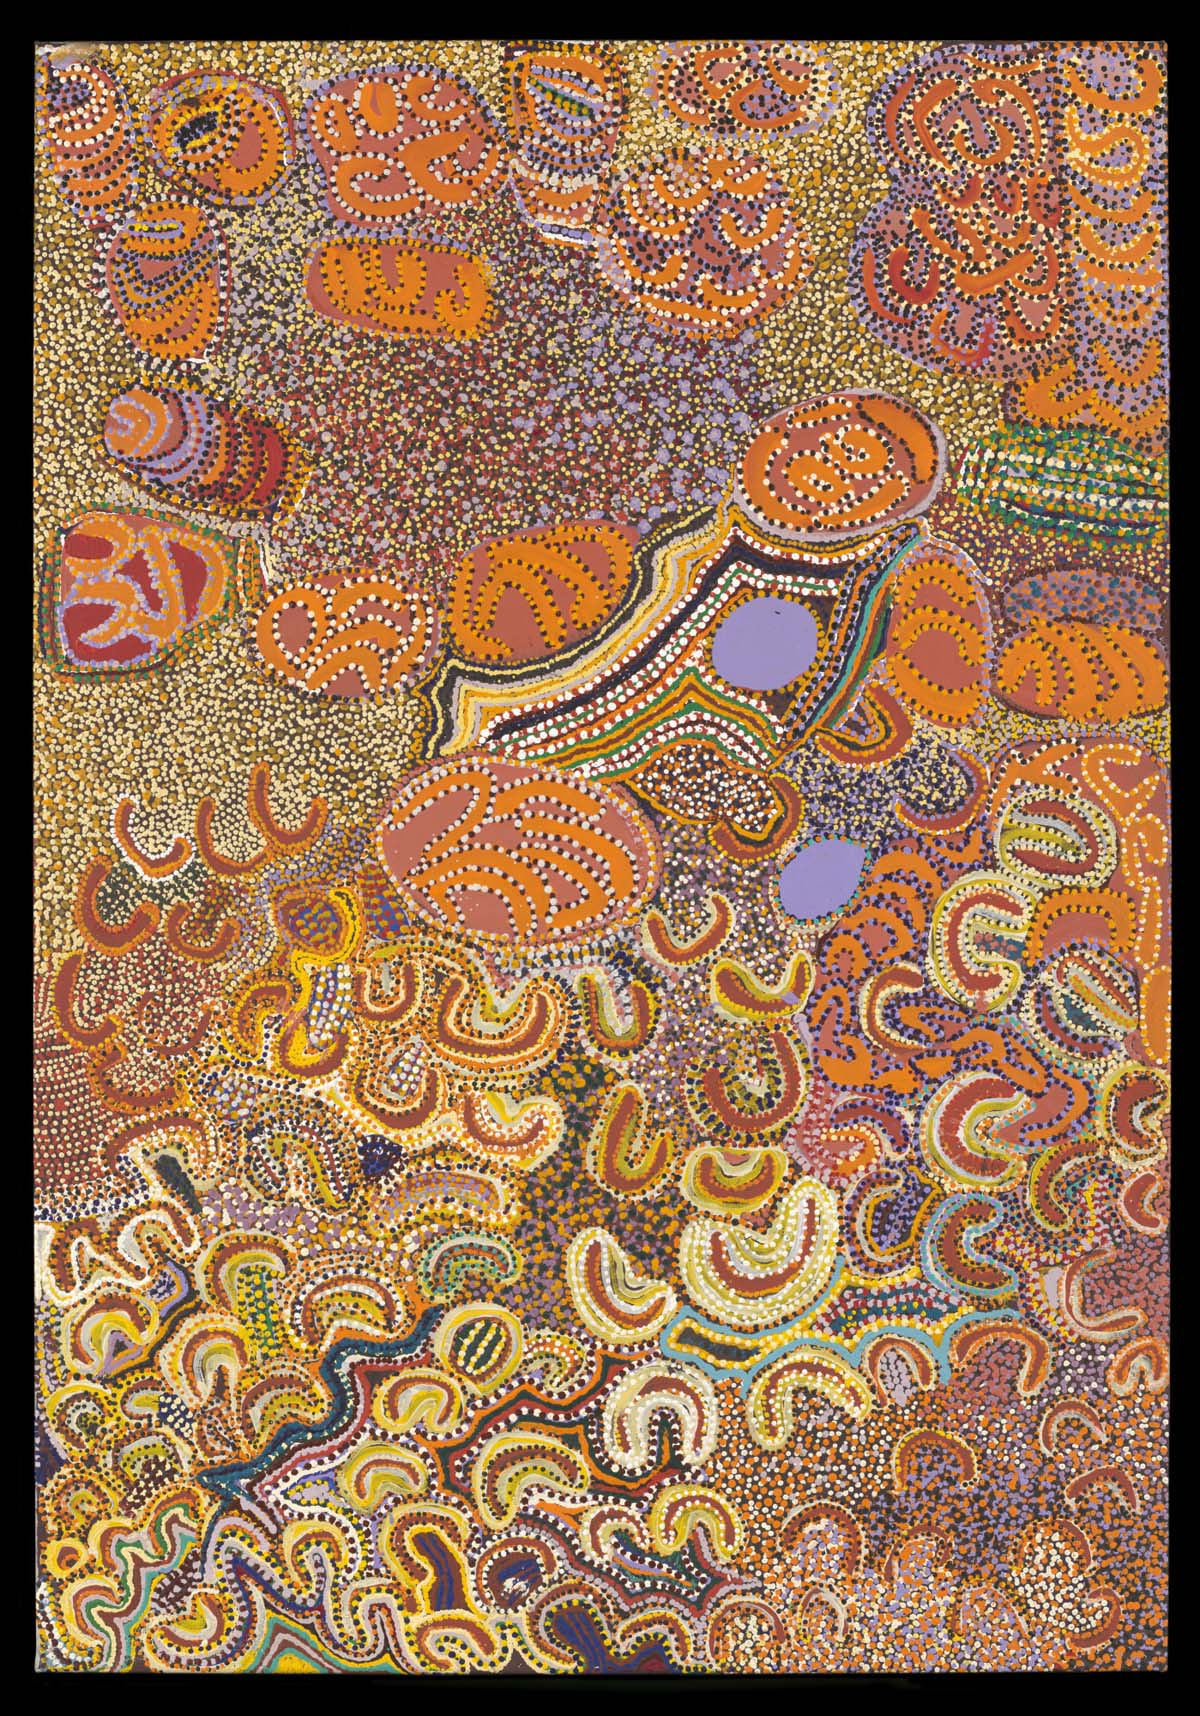 abstract painting with swirls and repeating circular patterns in an orange palette